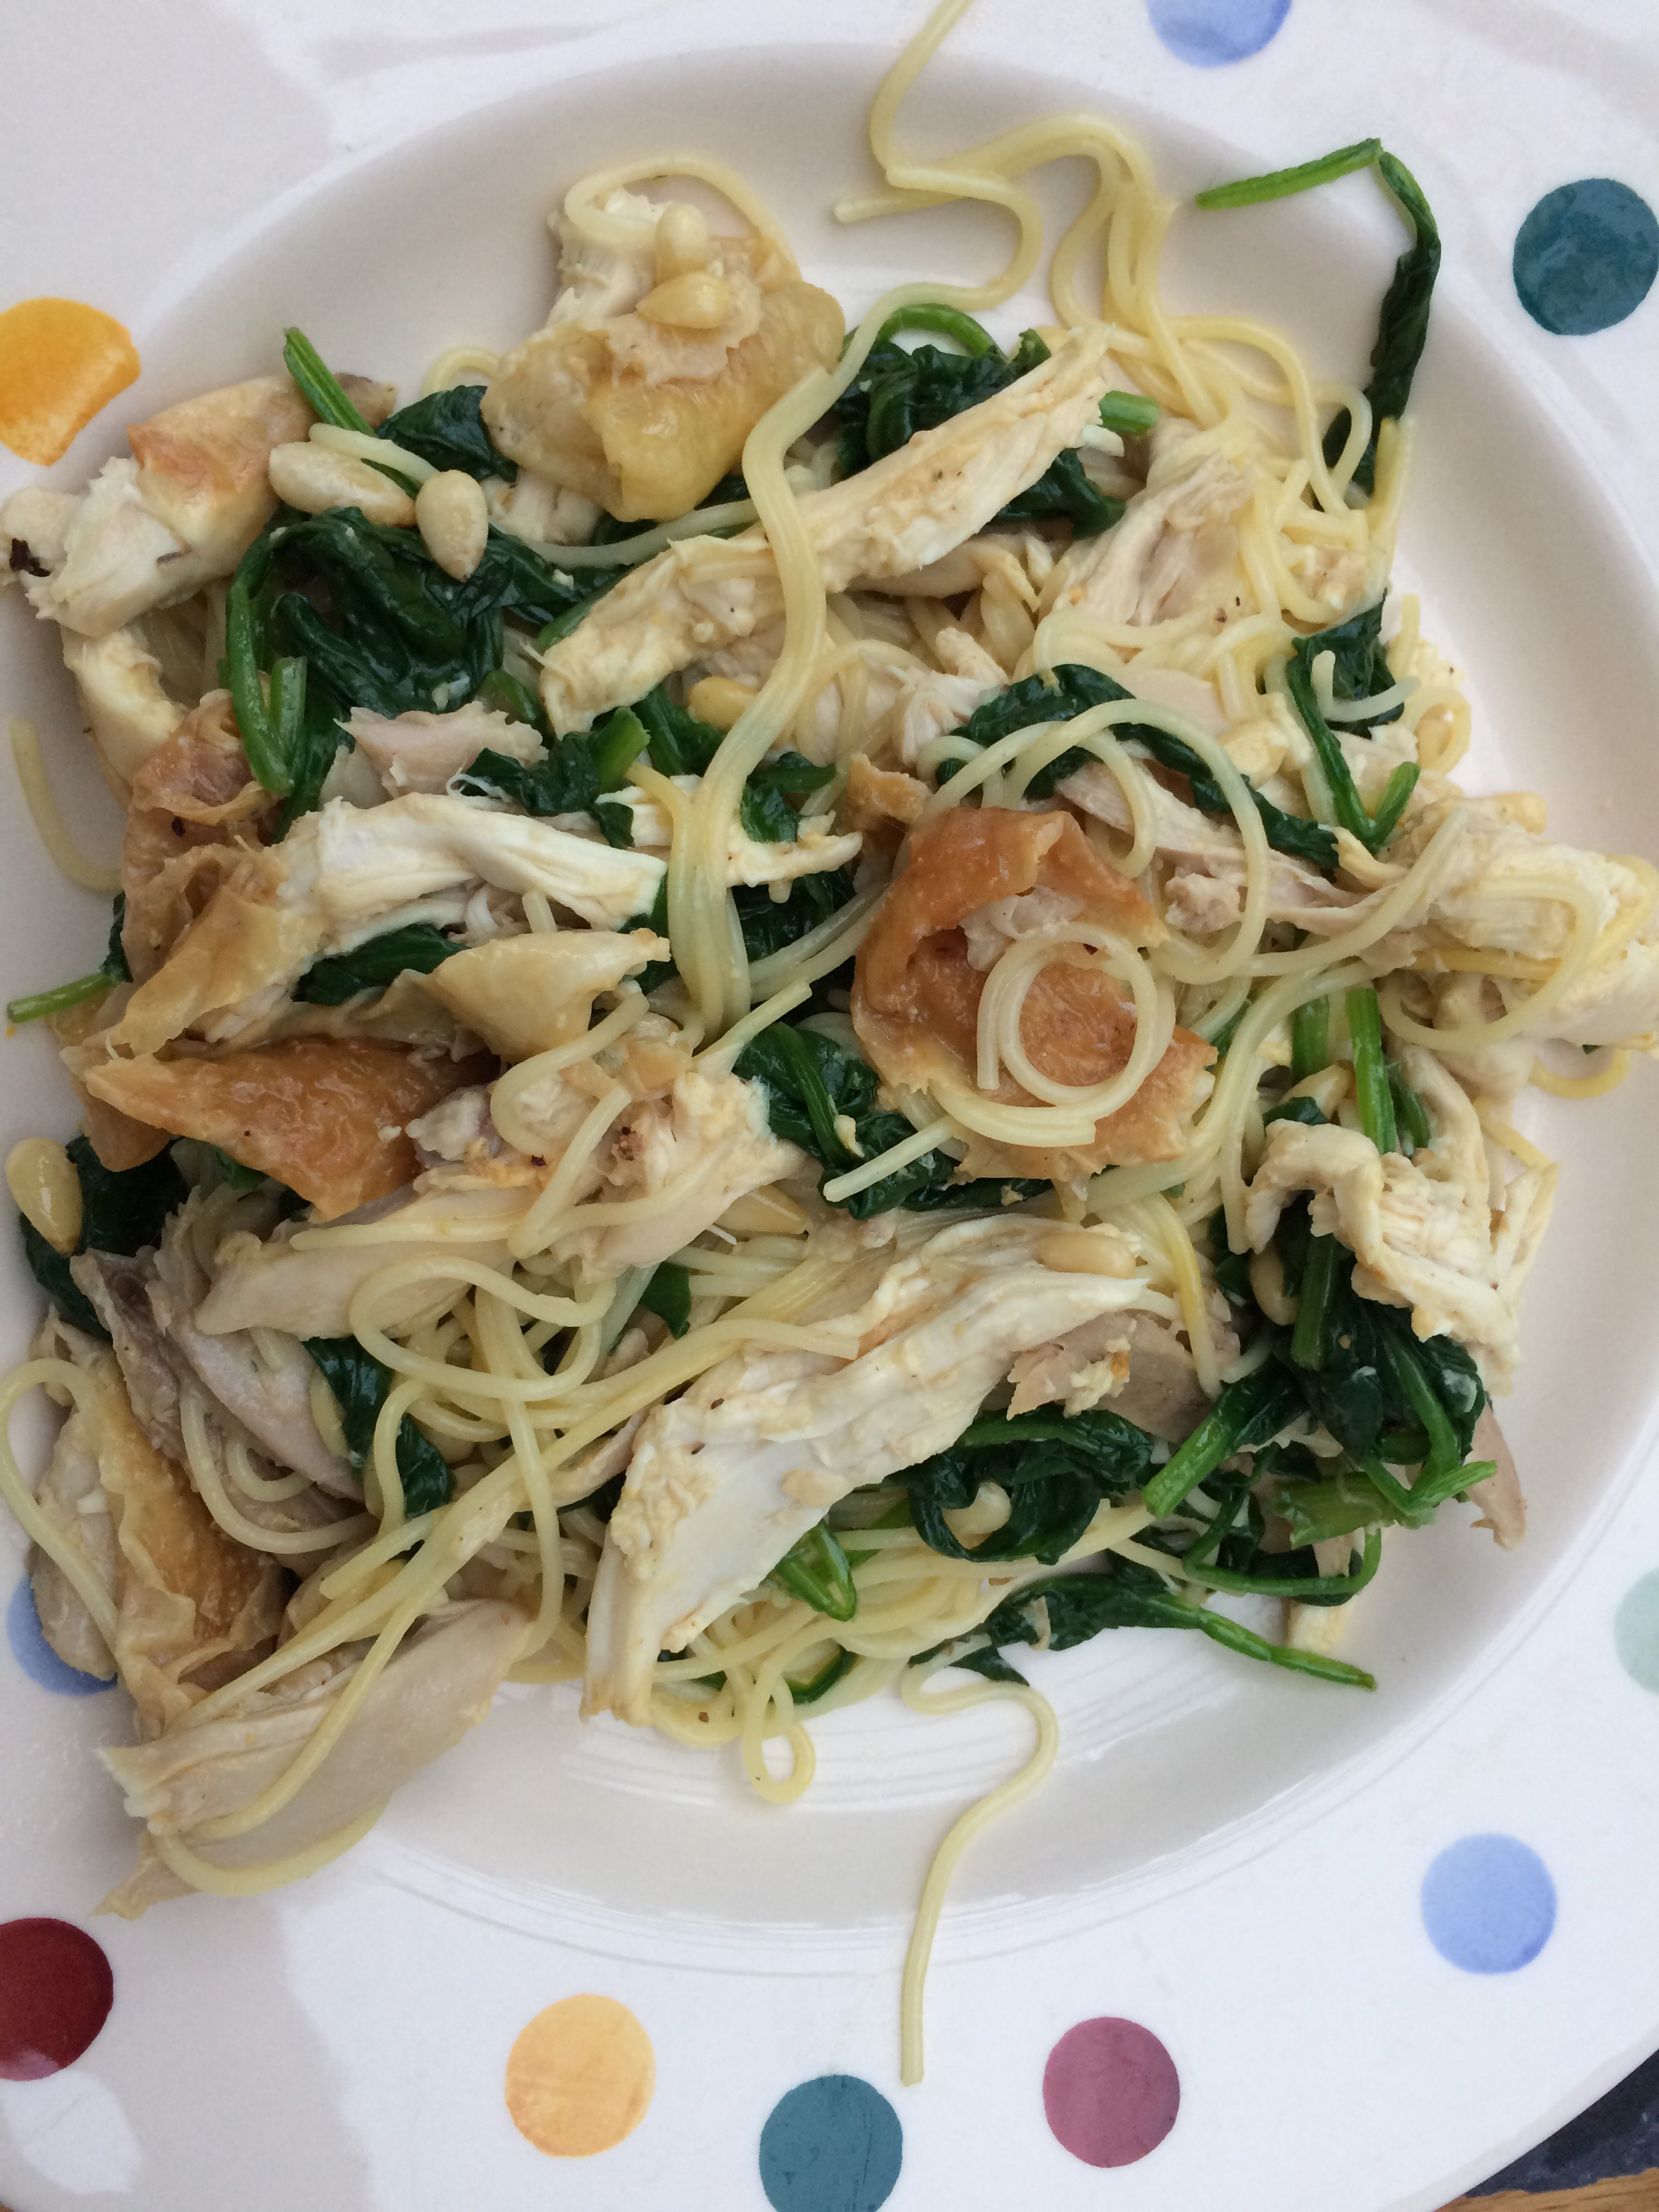 Cuts On This Nigella Recipe Who Wants Sultanas With Chicken Not Me Yuck Added Some Spinach And Used The Pasta I Had In The House As I Didn T Have